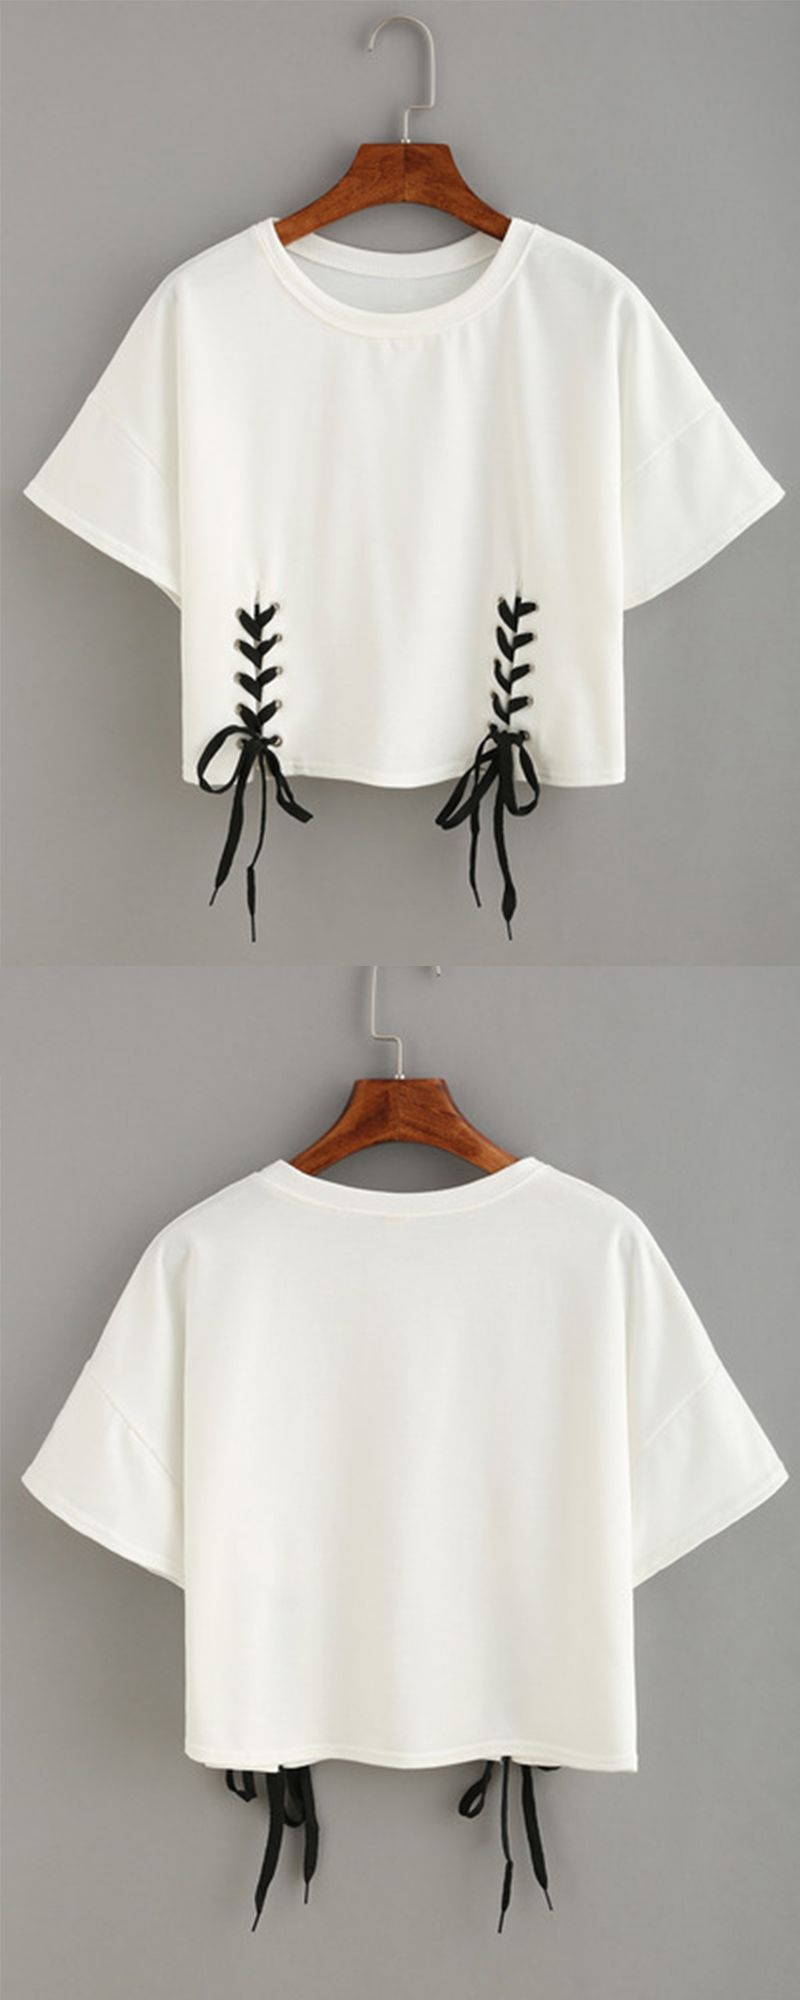 Double Lace-Up Hem Crop T-shirt | Pinterest | Shirt pins, DIY ...